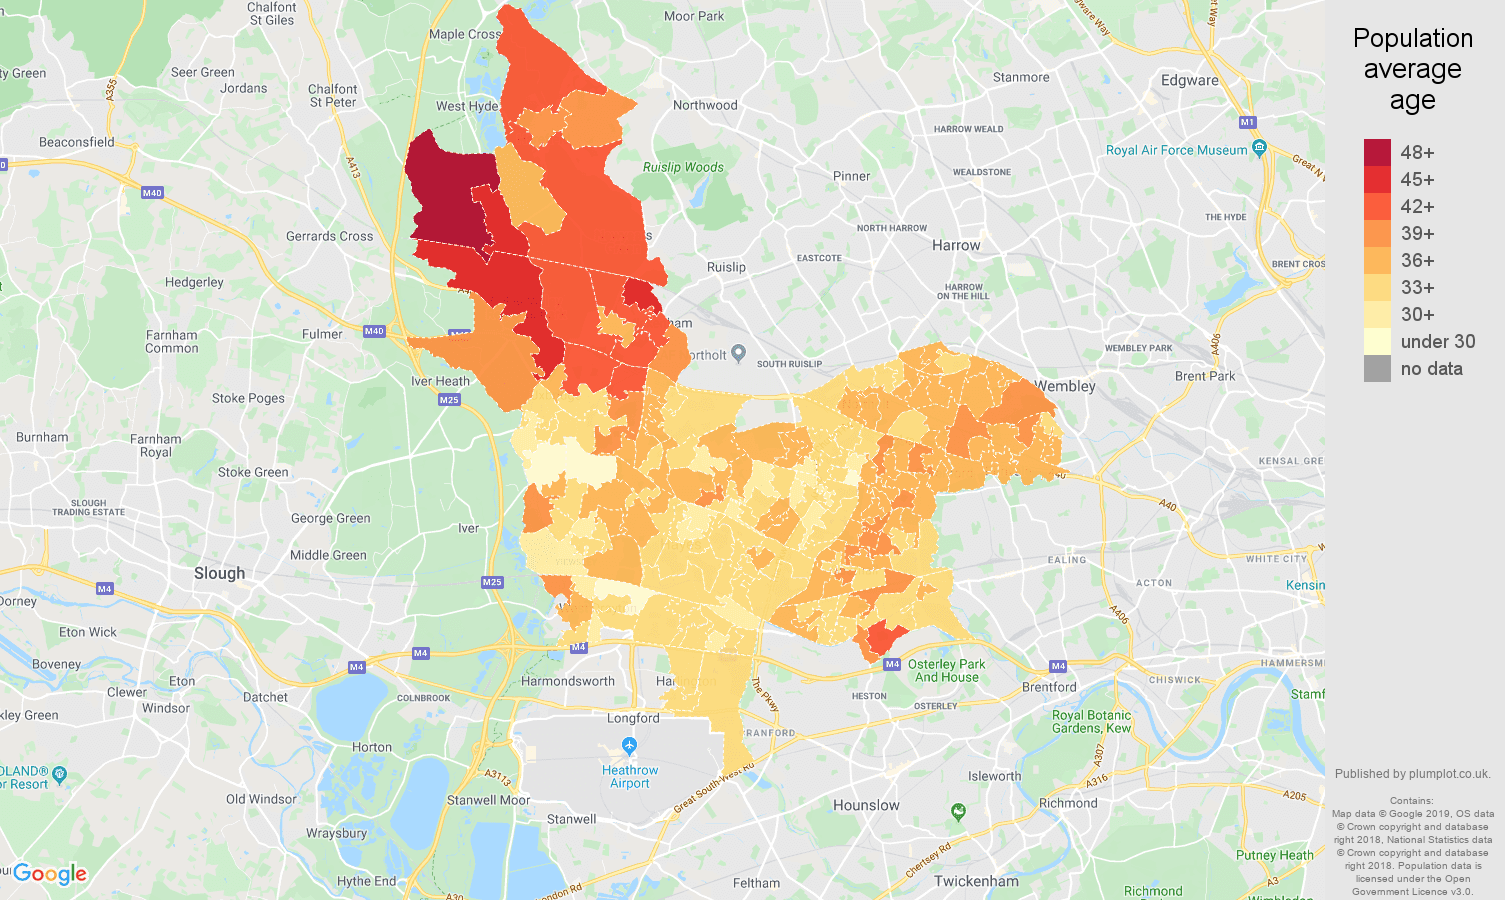 Southall population average age map